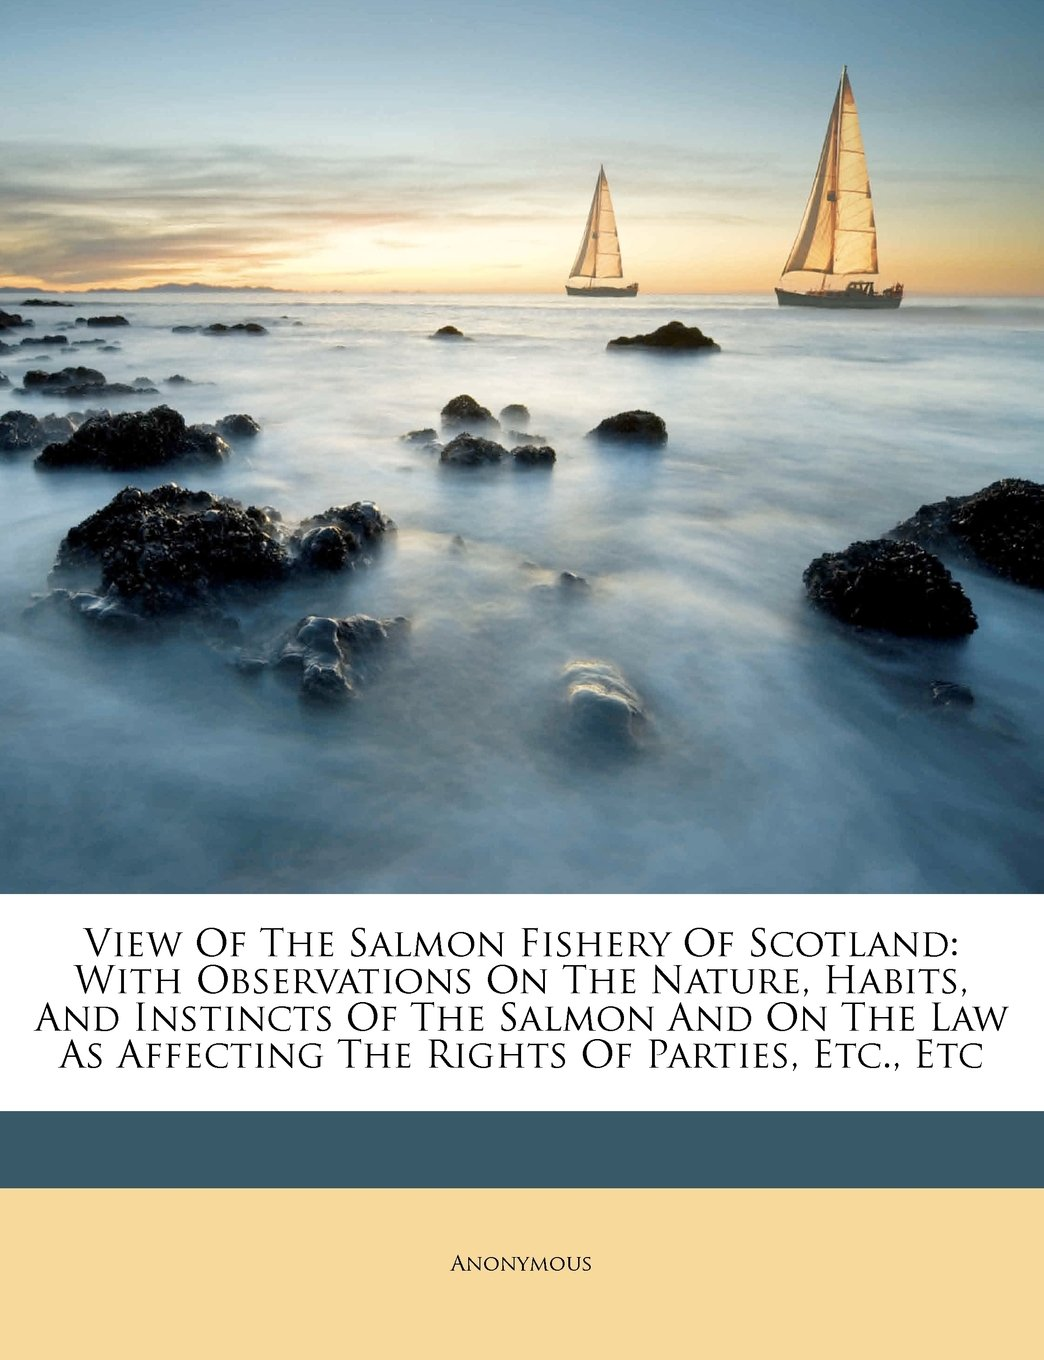 Download View Of The Salmon Fishery Of Scotland: With Observations On The Nature, Habits, And Instincts Of The Salmon And On The Law As Affecting The Rights Of Parties, Etc., Etc PDF